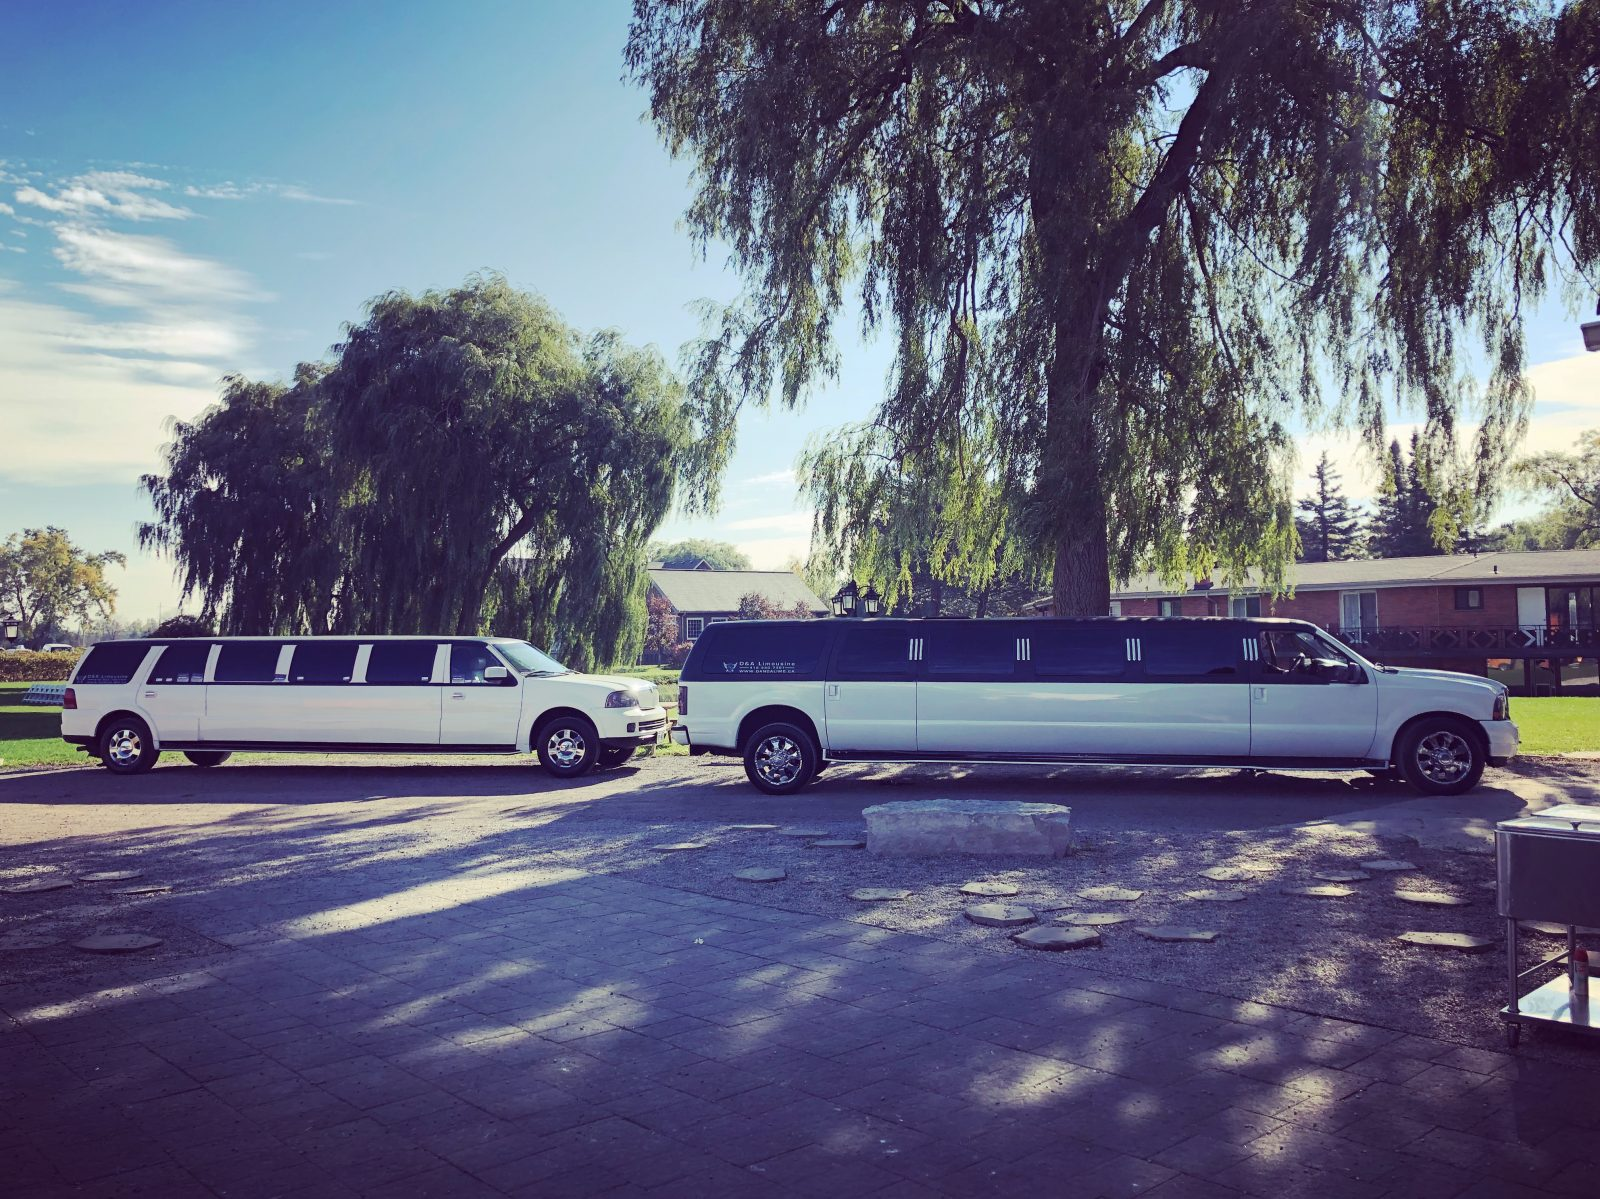 An image showing two of D & A's Limos in from of the Willow Springs Winery